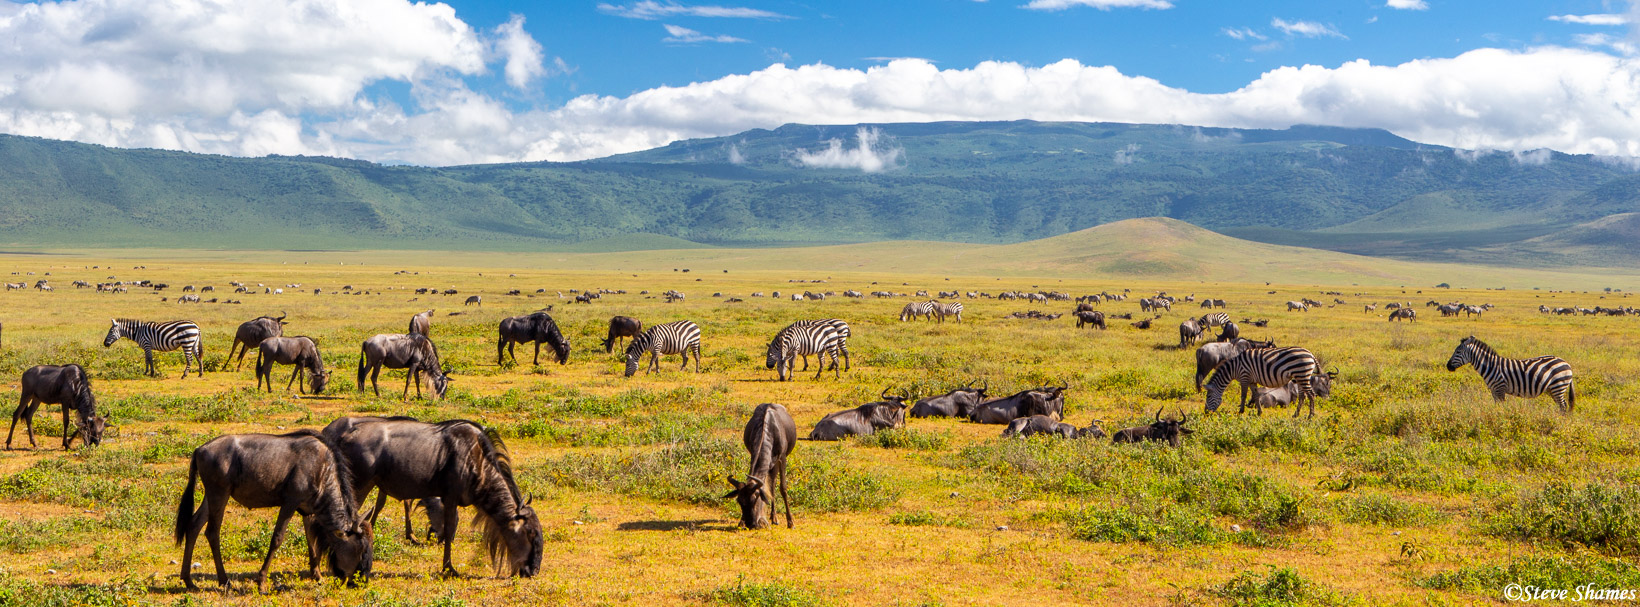 ngorongoro crater, tanzania, wildlife, photo